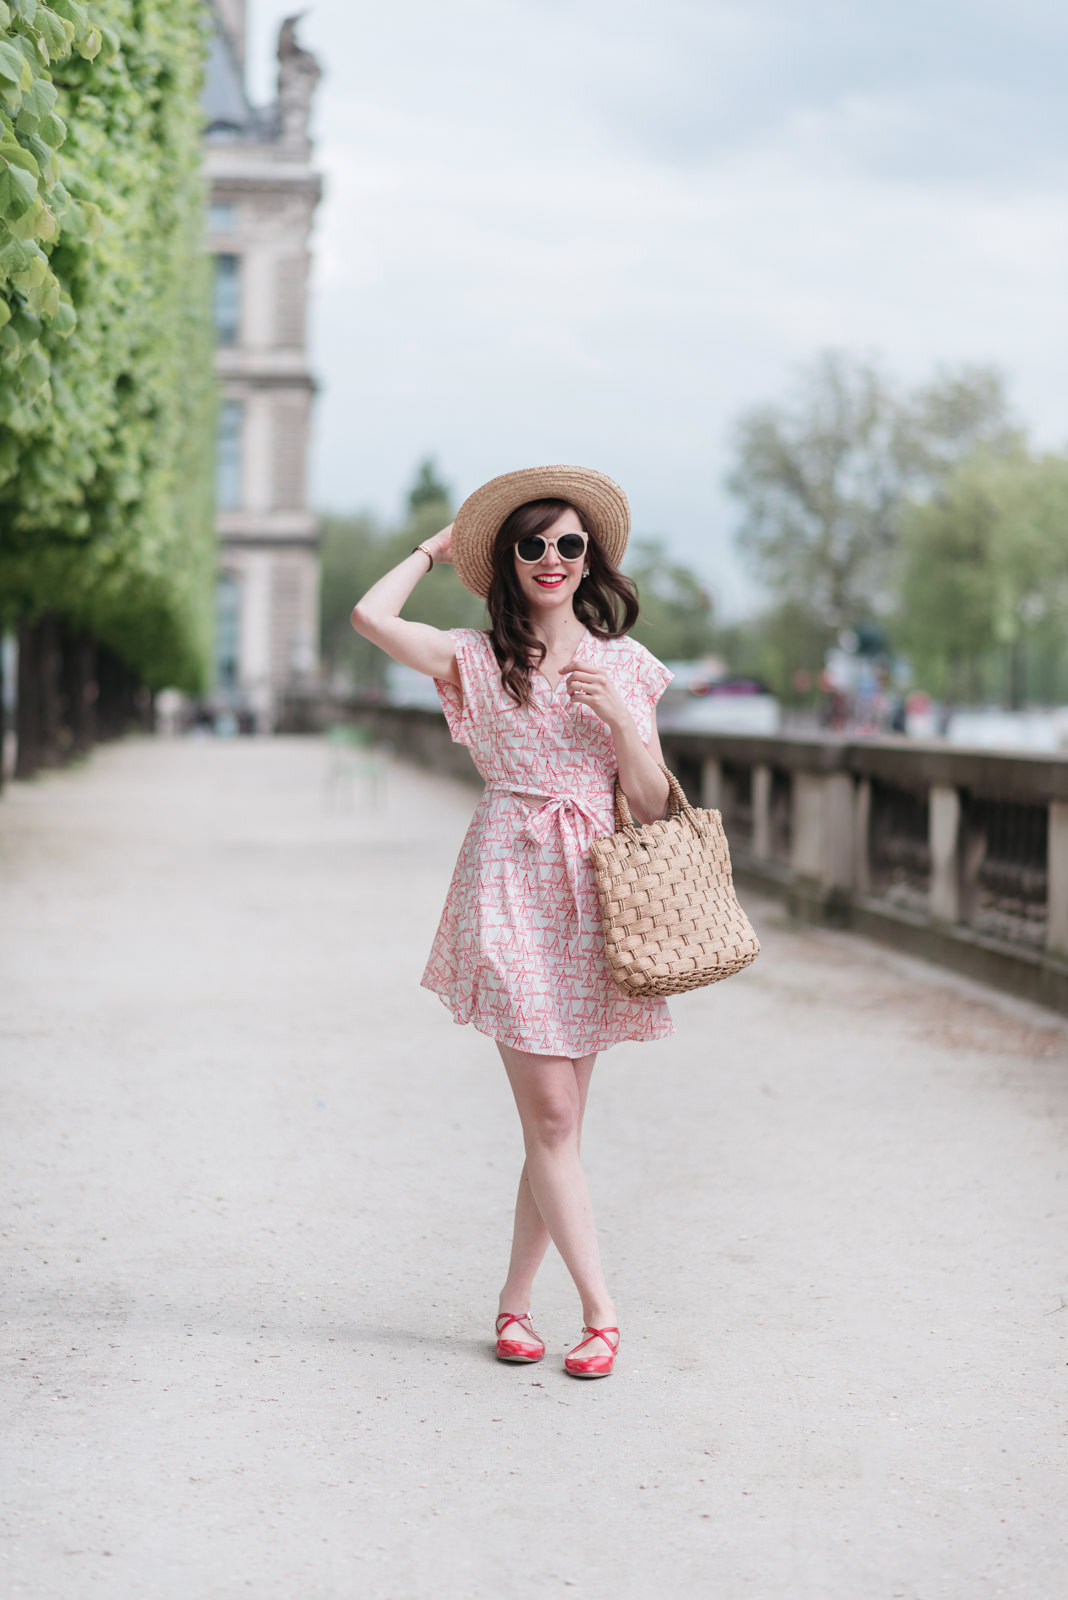 Blog-Mode-And-The-City-Looks-la-robe-a-petits-bateaux-8